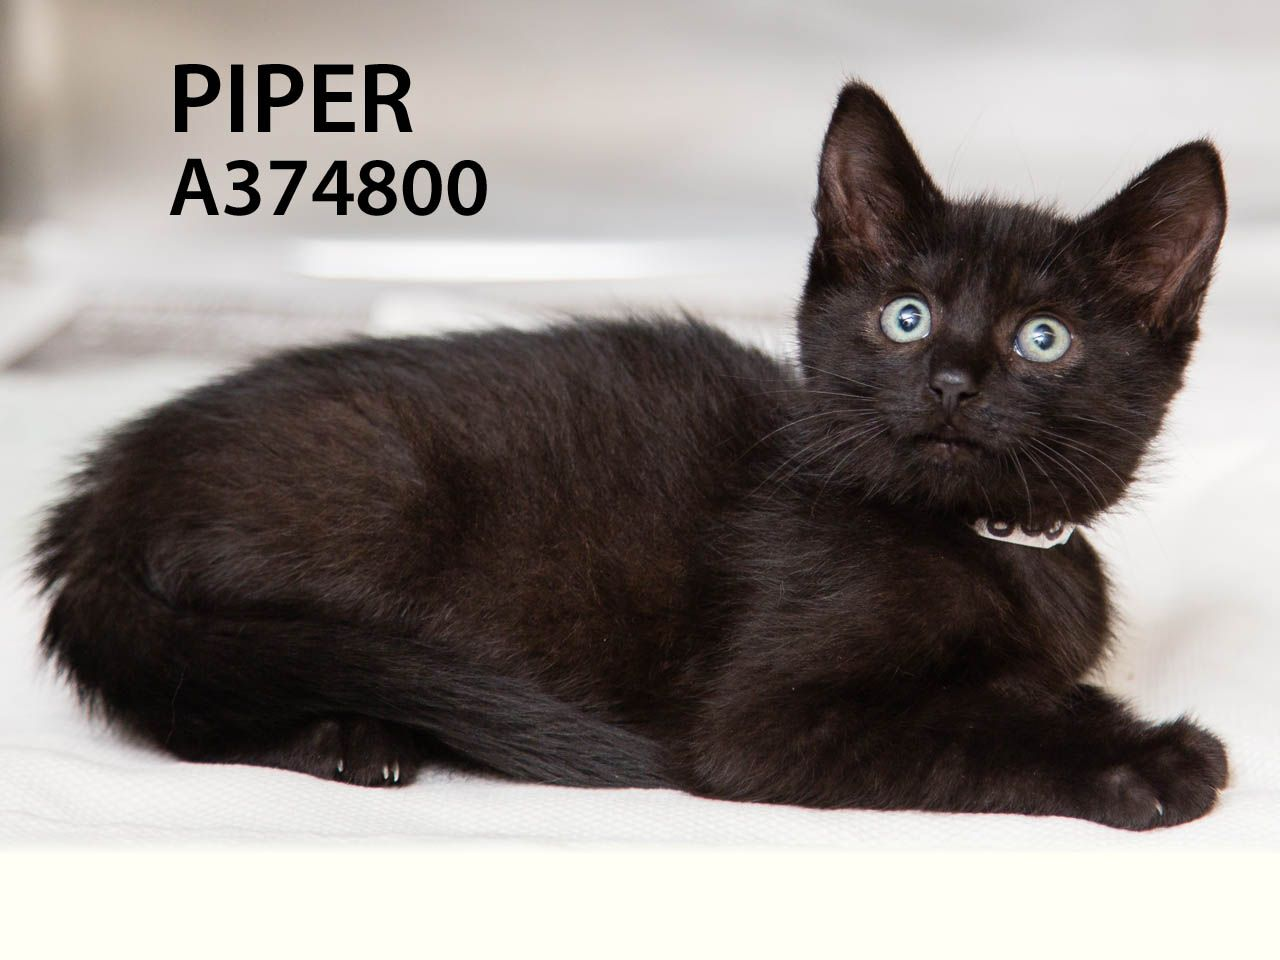 Piper & Pluto (ID: A374800 & A374697) are adorable and ready for their forever home. It would be wonderful if they could be adopted together -- they were in a great Toni's Kitty Rescue foster home. Come meet these cuties today.